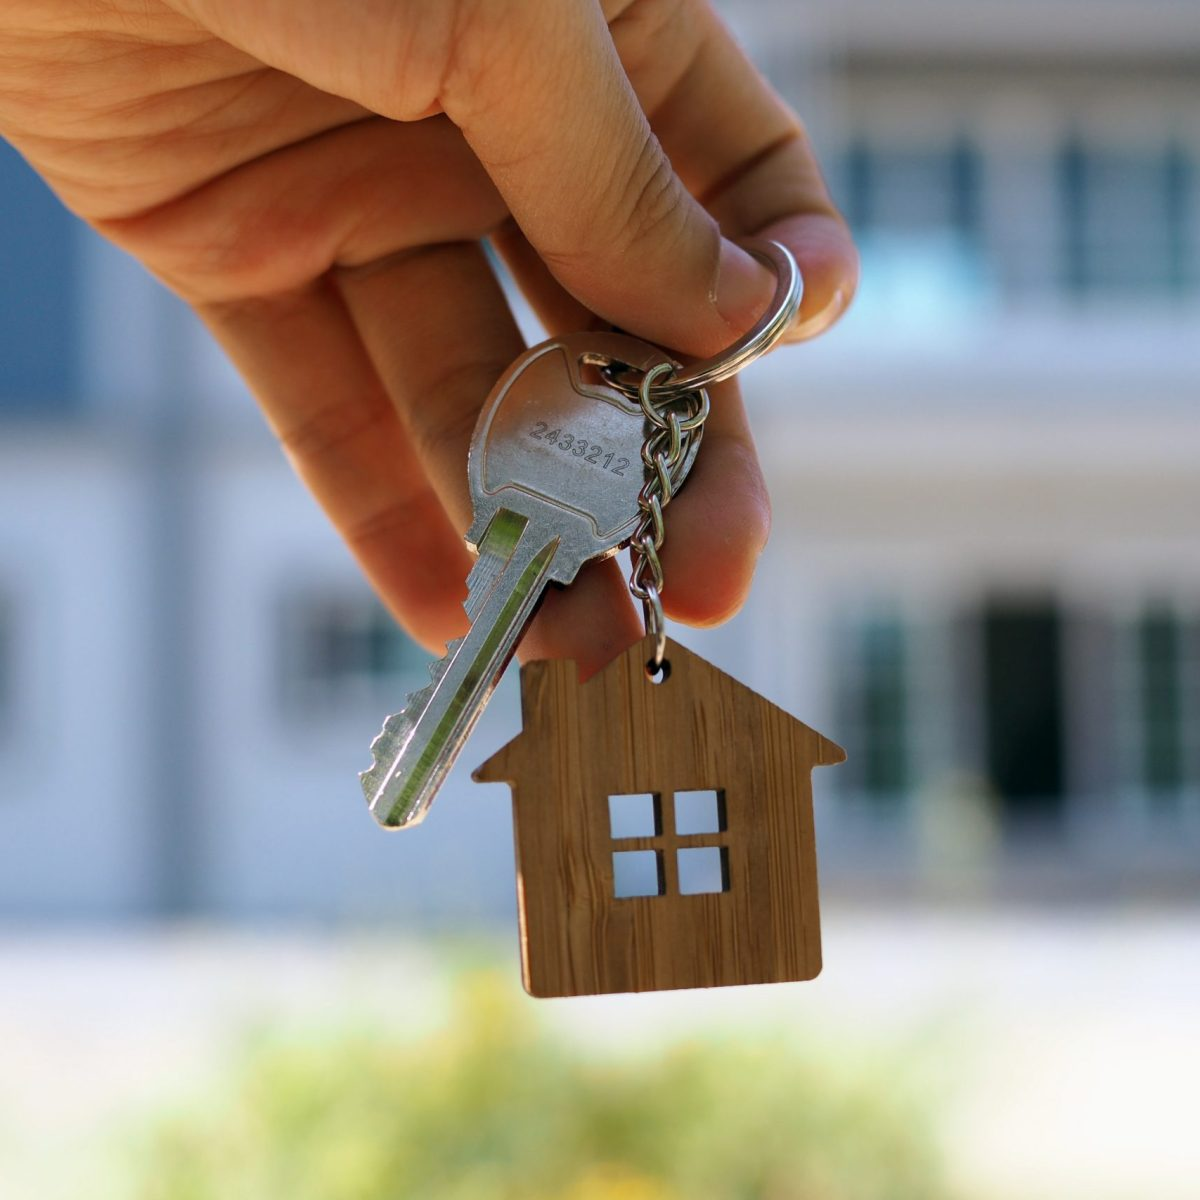 these home buying tips just might save you headaches, heartaches and lots of money!